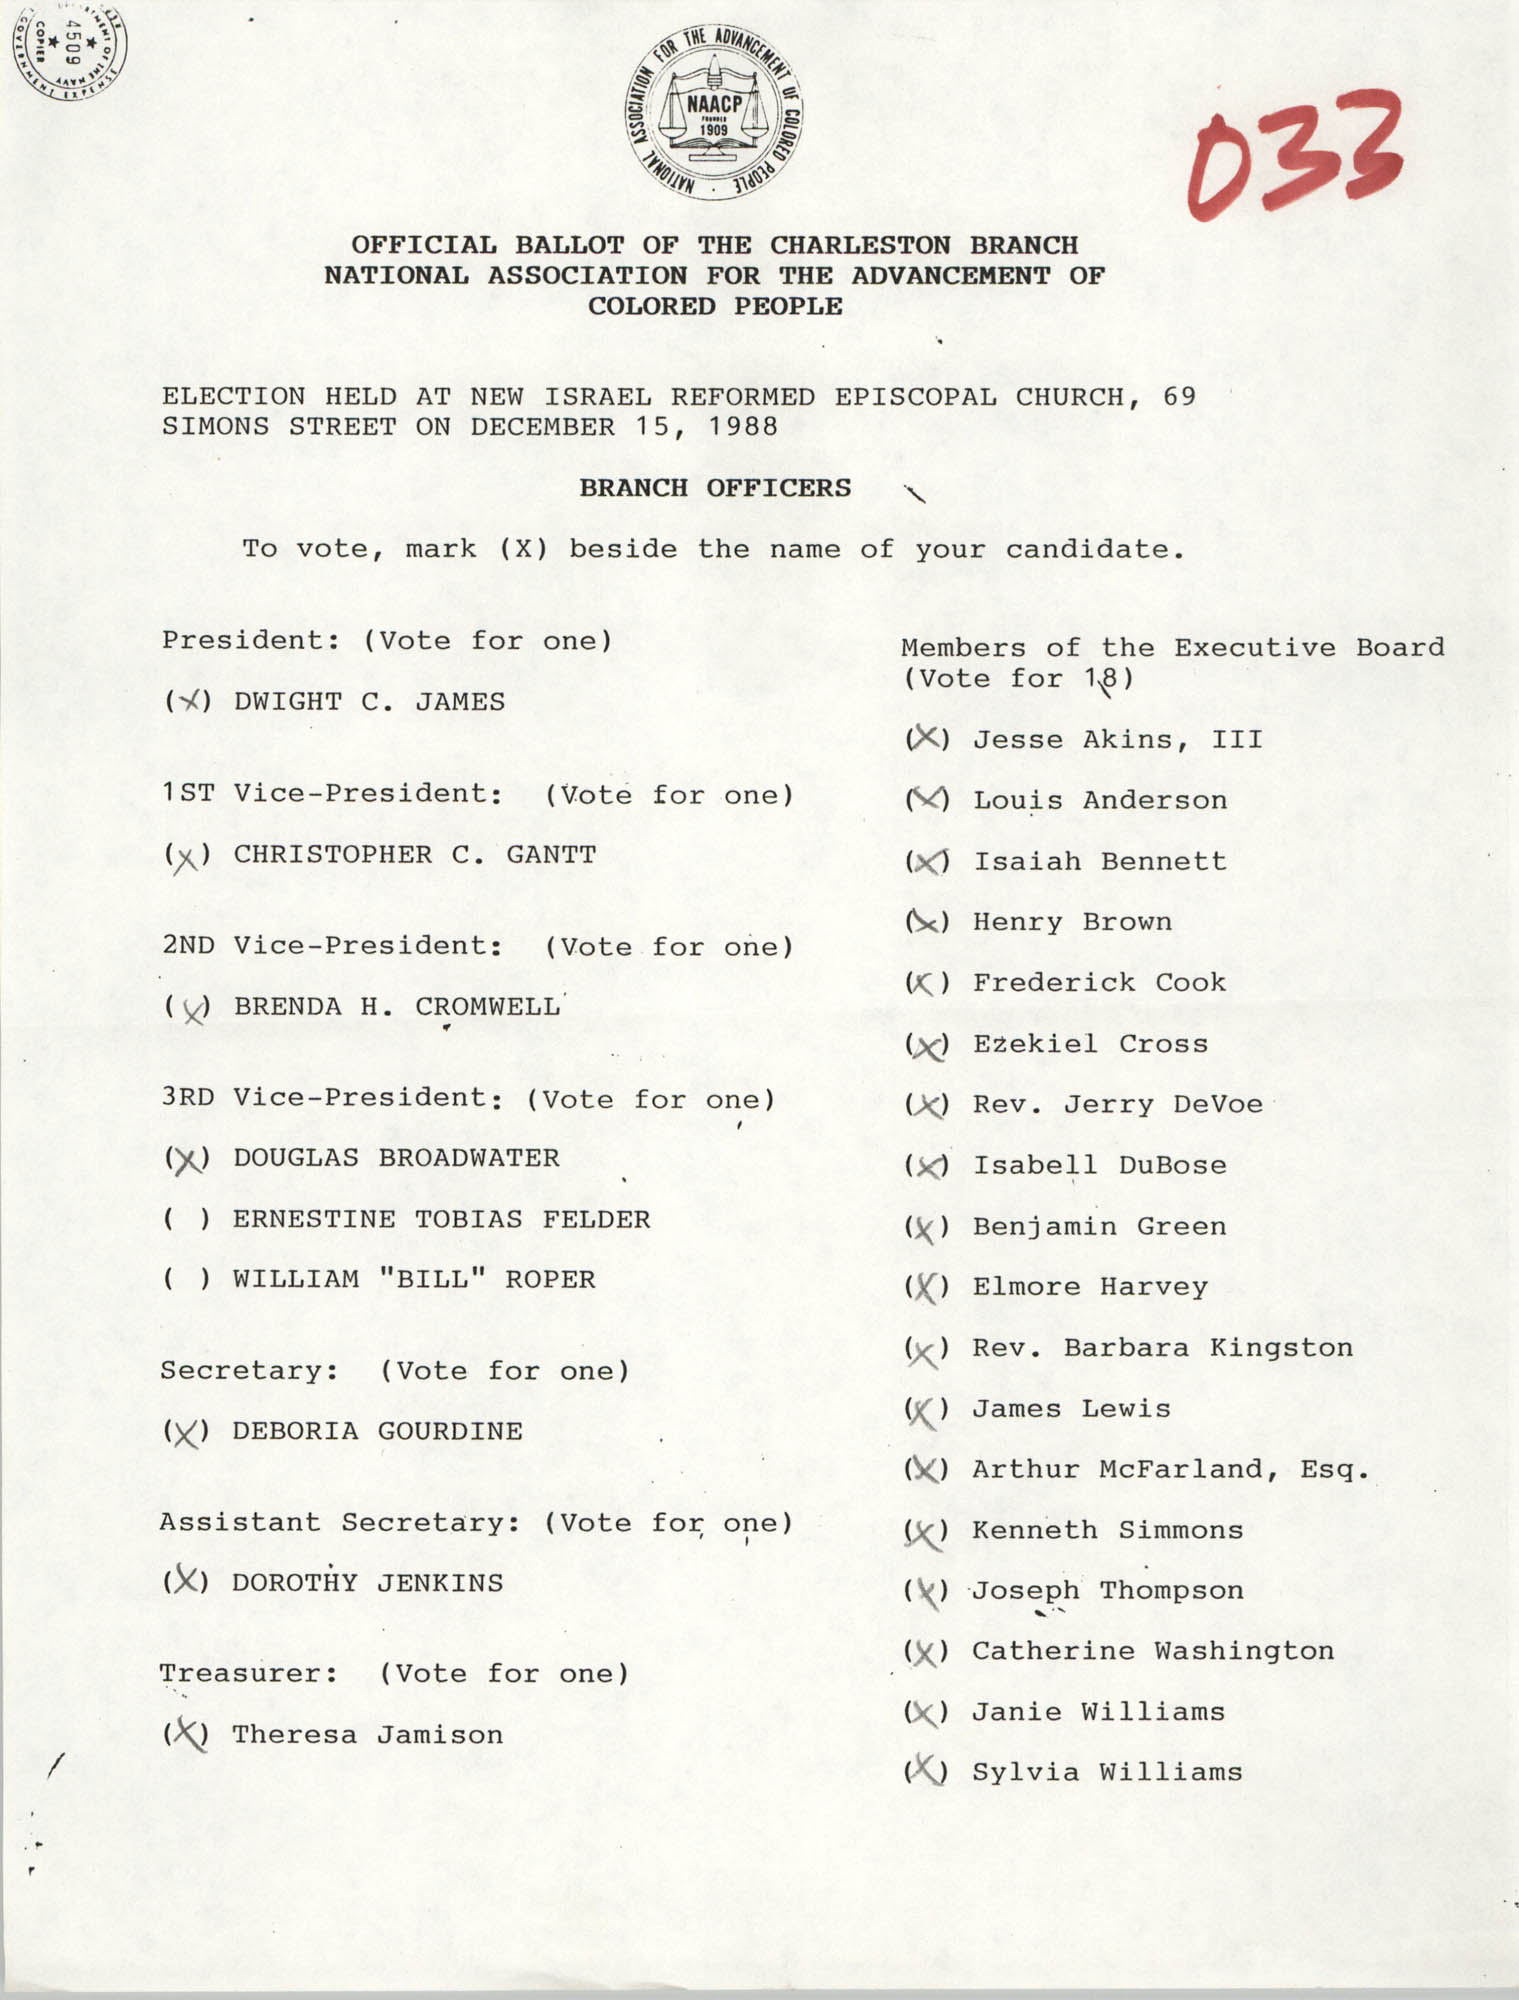 Official Ballot of the Charleston Branch of the NAACP, 033